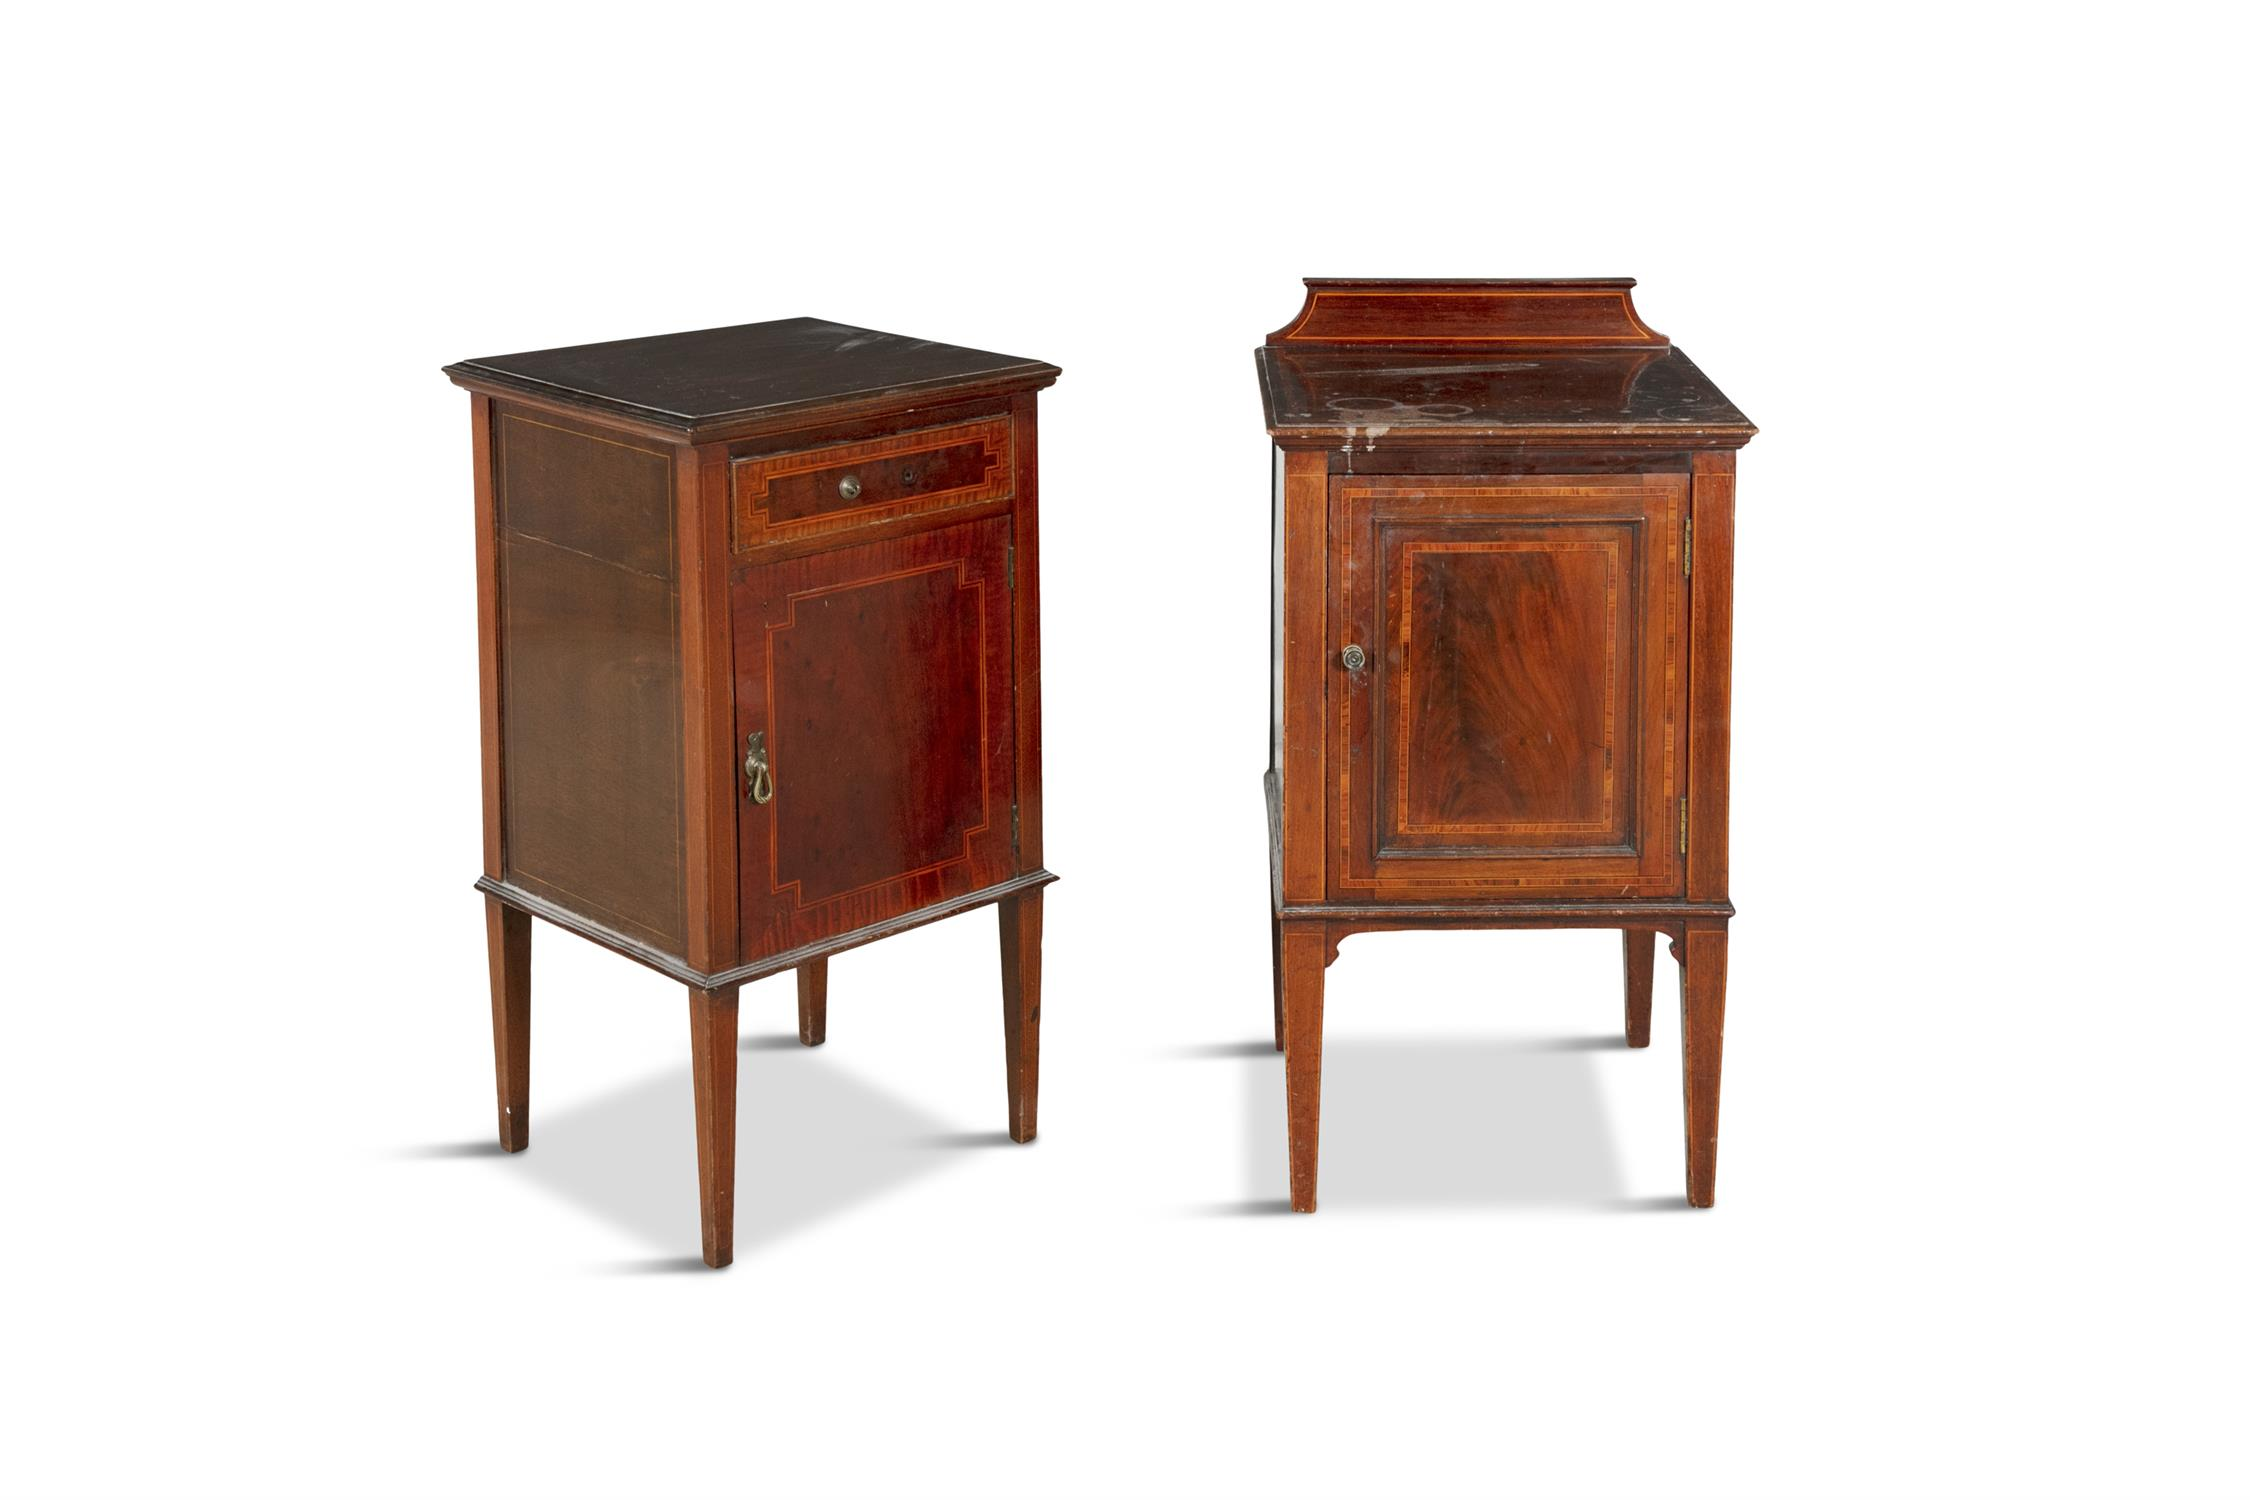 A PAIR OF 19TH CENTURY COMPACT MAHOGANY LOCKERS, in the form of miniature cabinets on stand, - Image 4 of 4